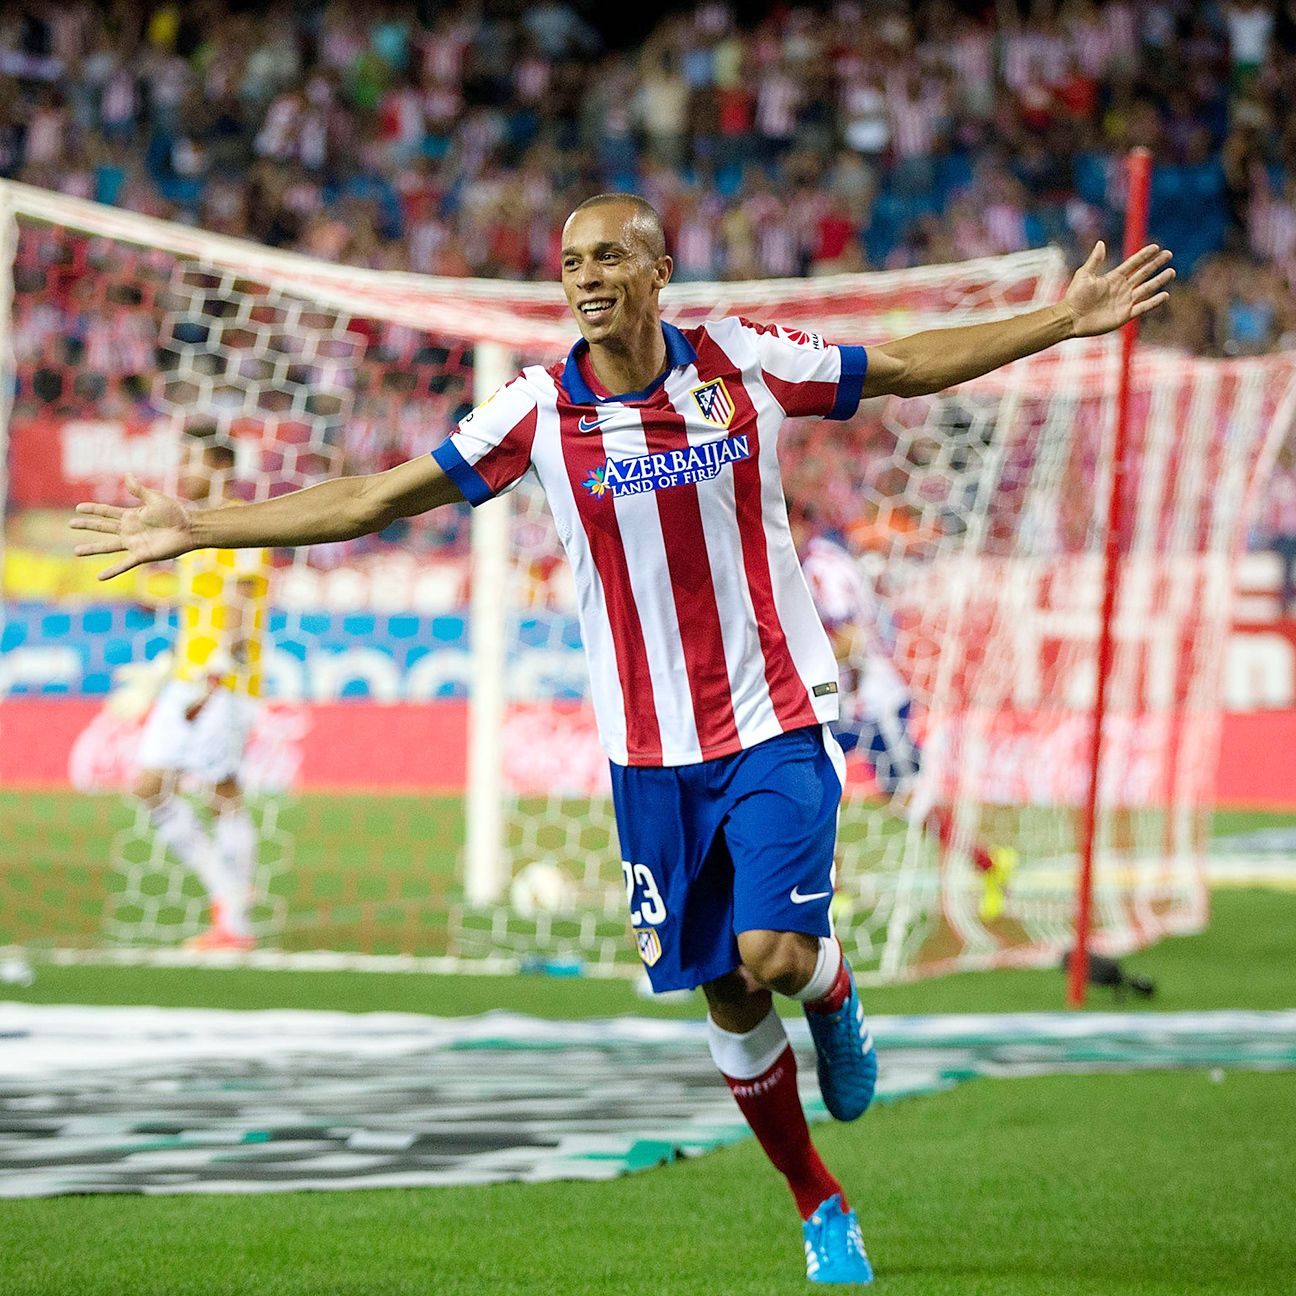 Joao Miranda's four seasons at Atletico included Copa del Rey and La Liga titles.